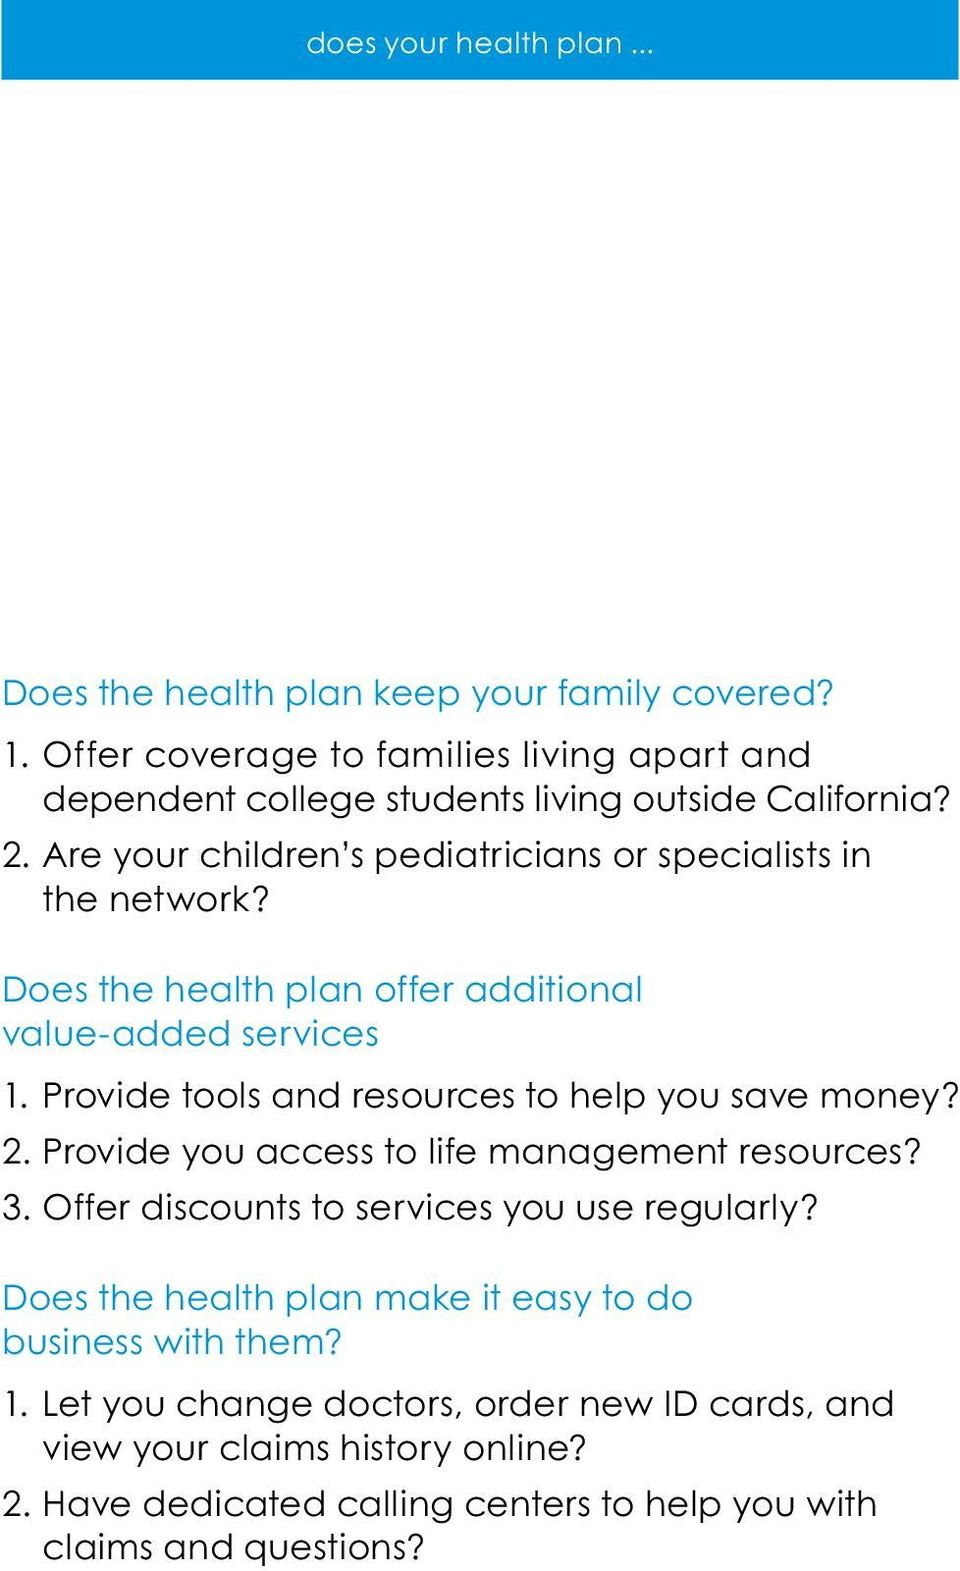 Does the health plan offer additional value-added services 1. Provide tools and resources to help you save money? 2. Provide you access to life management resources? 3.